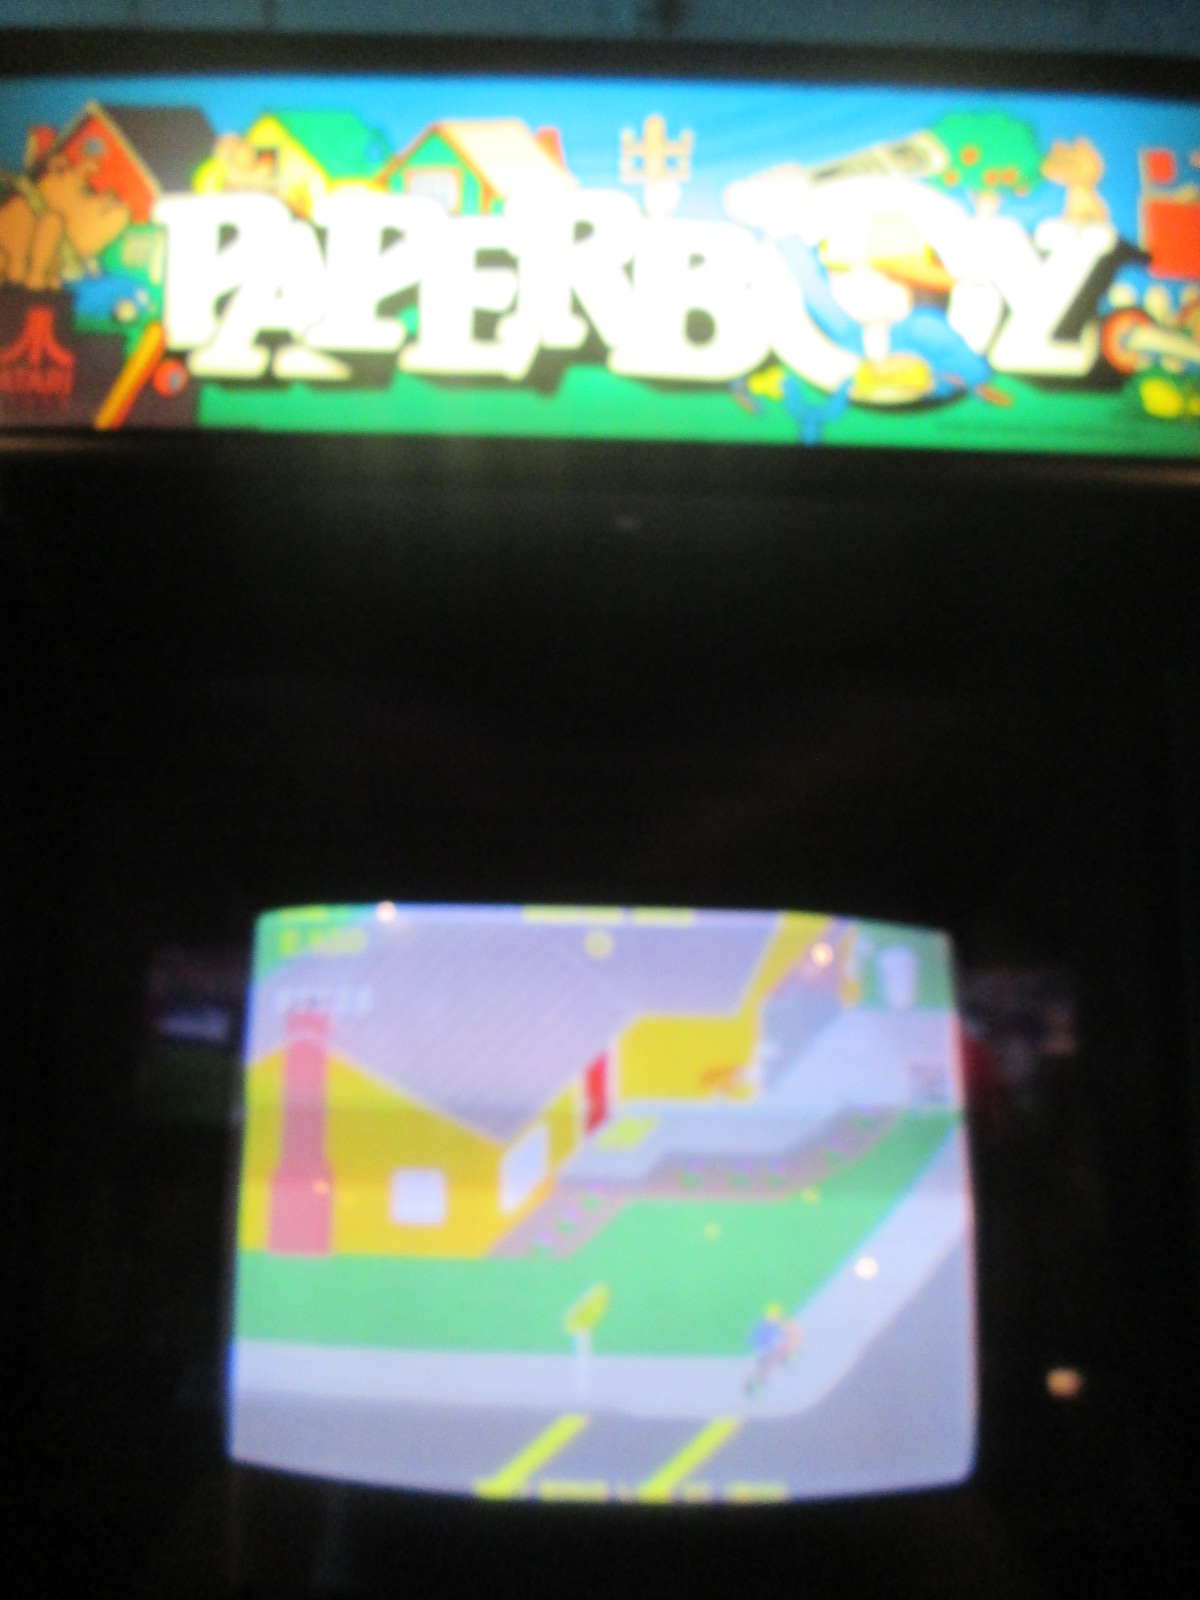 ed1475: Paperboy (Arcade) 2,850 points on 2016-08-28 16:56:47